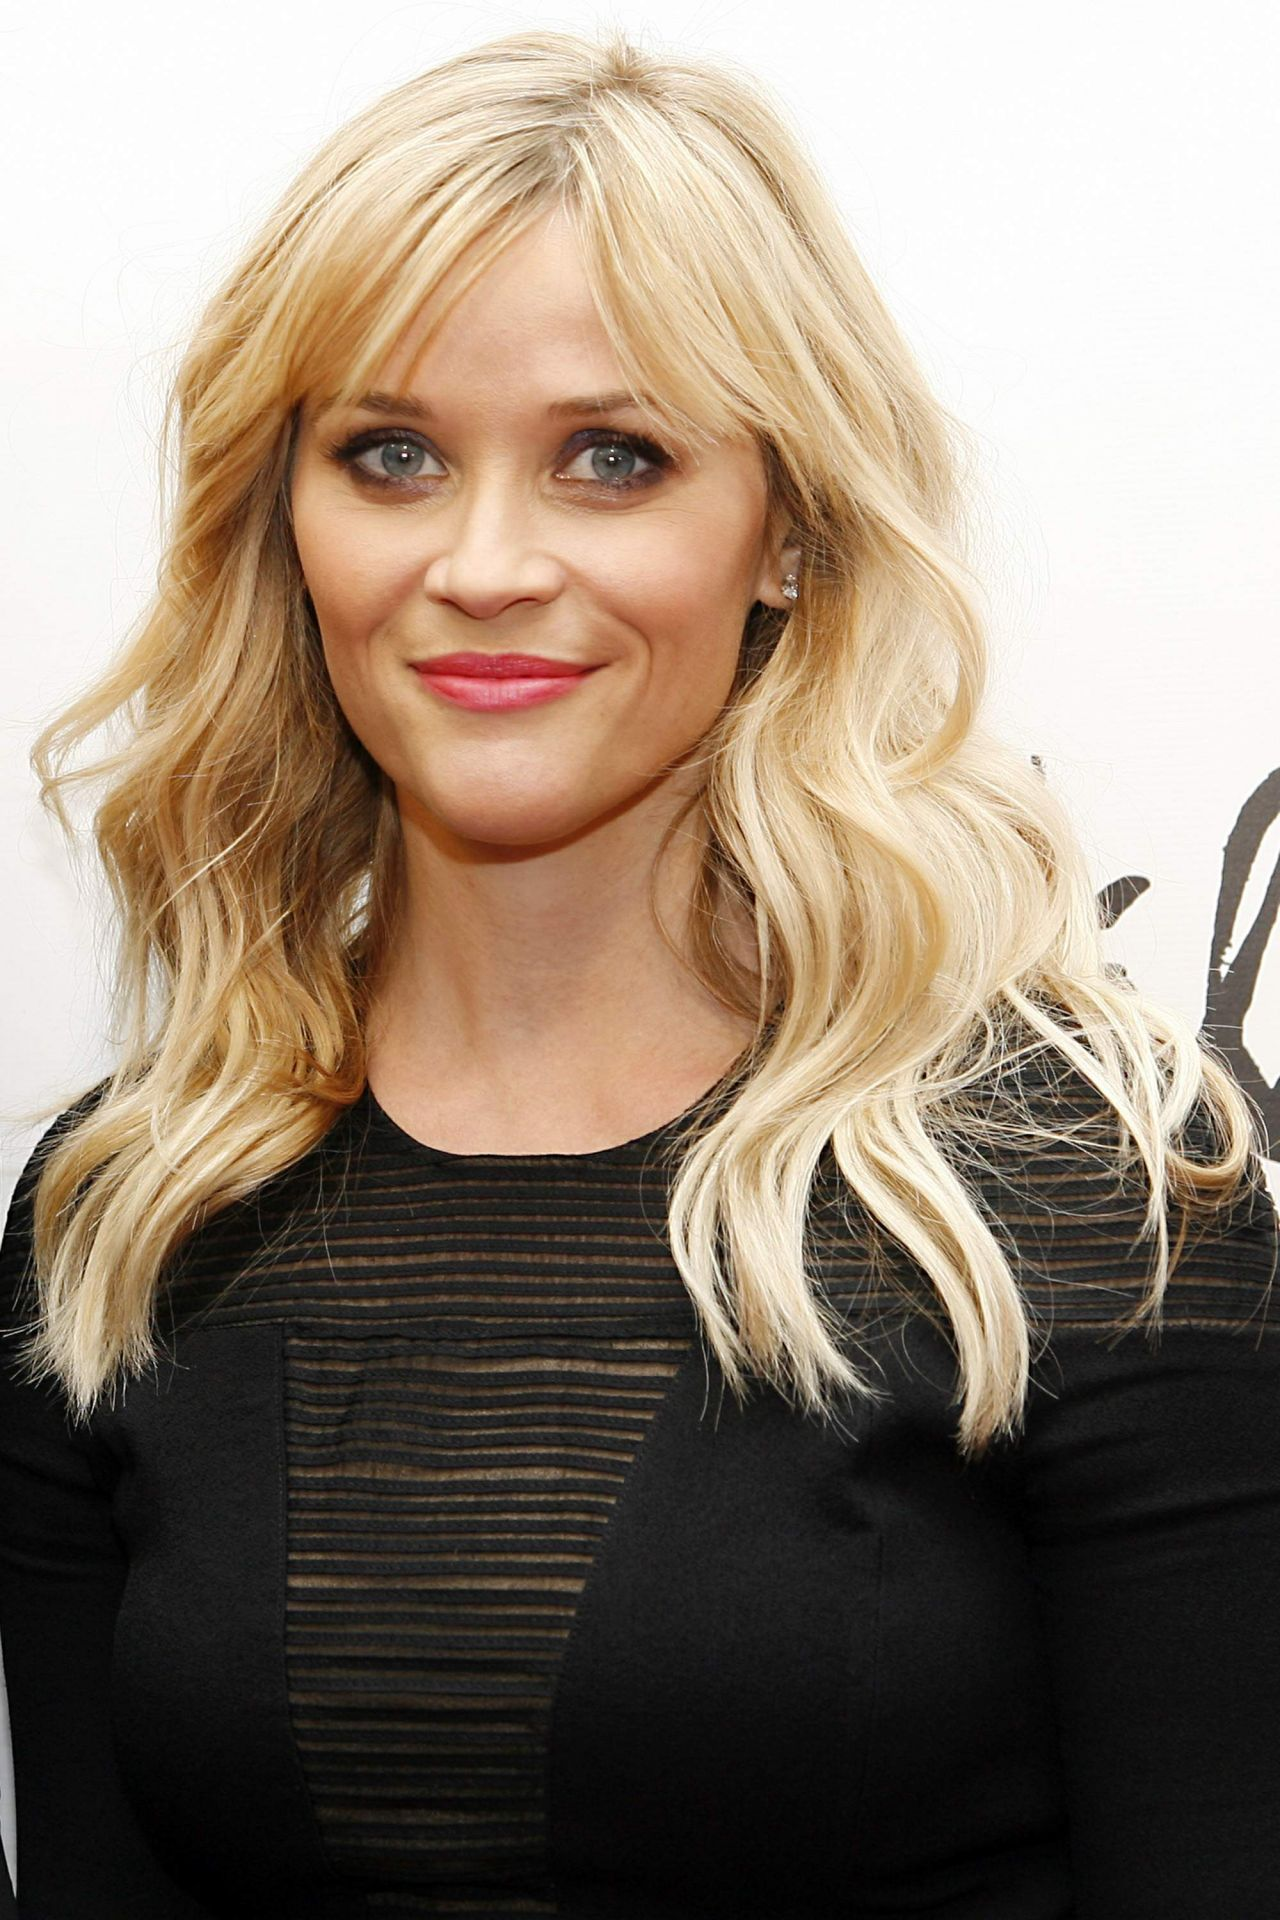 Reese Witherspoon Wild Movie Premiere In Portland